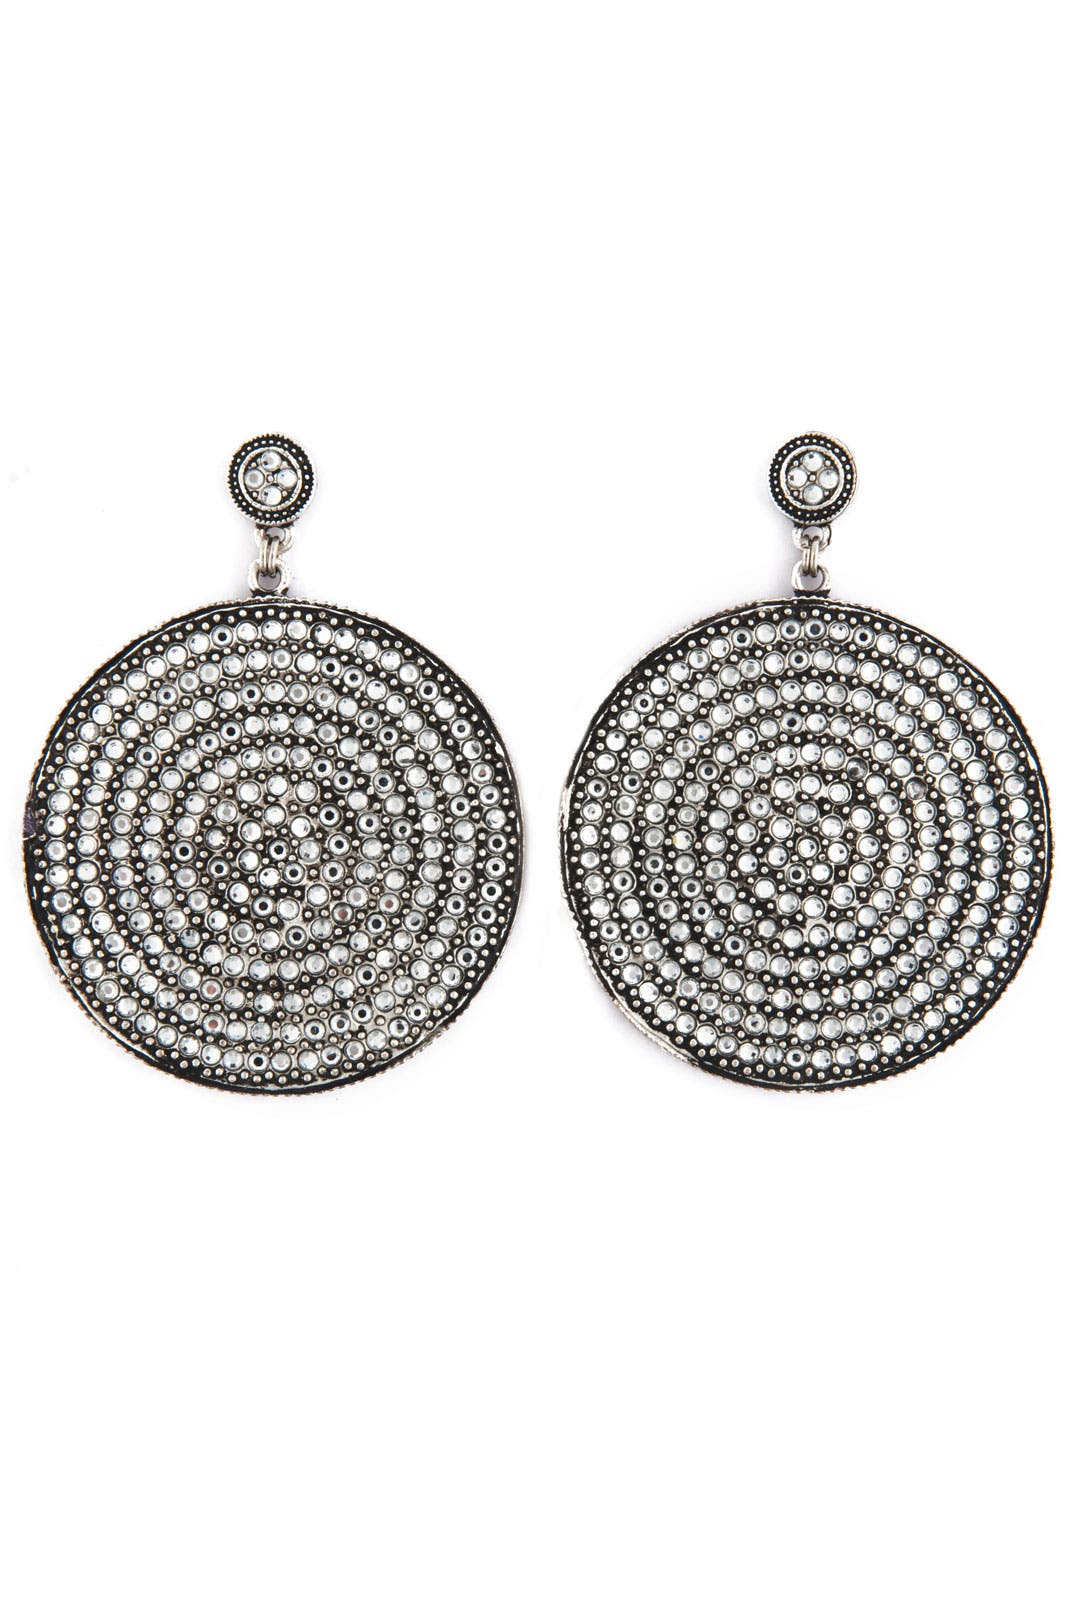 Silver Disc Earrings by Azaara